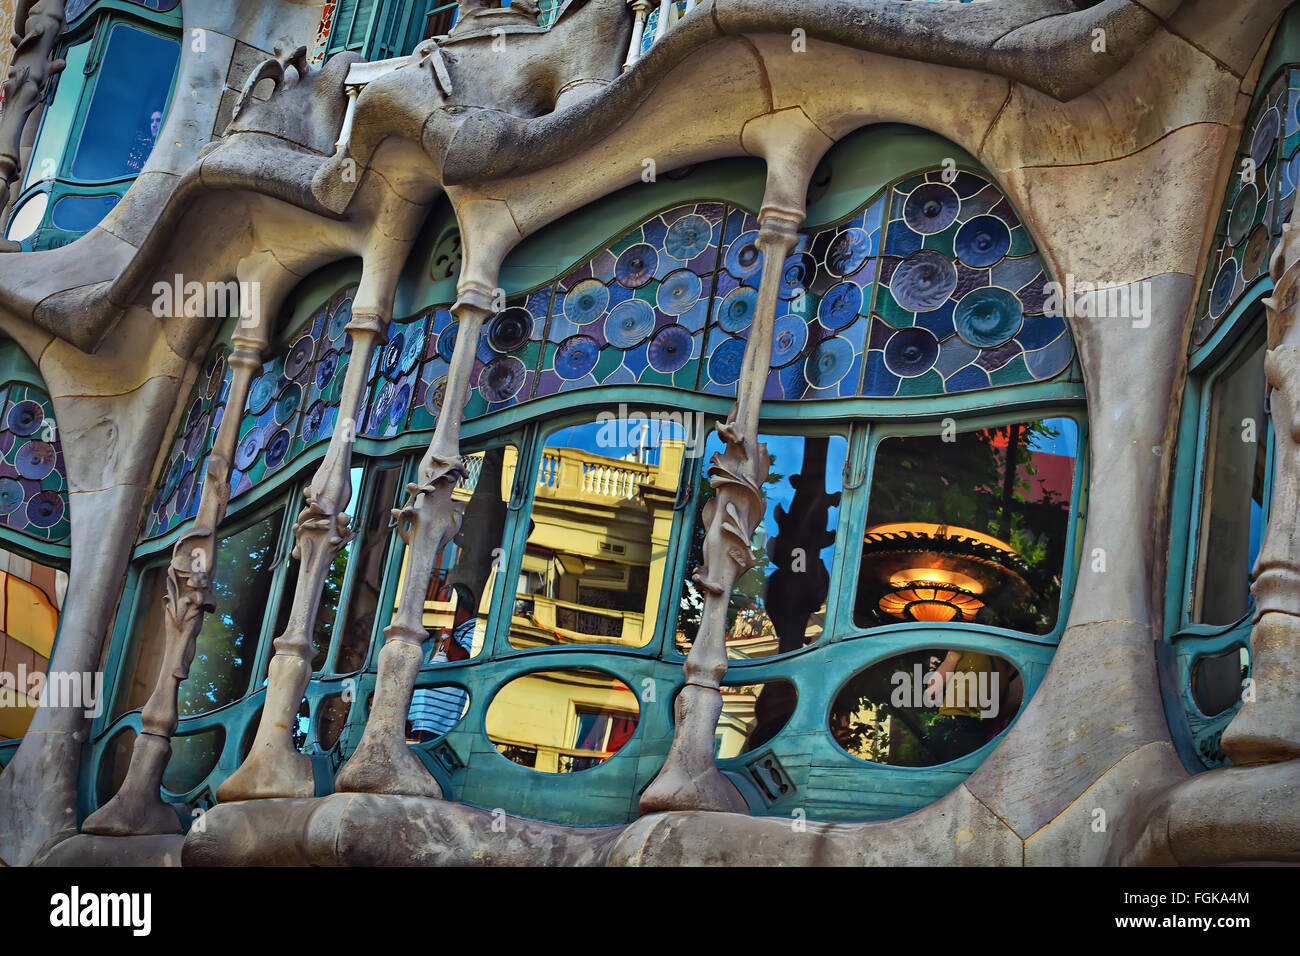 Gaudi project.The facade of the famous building Casa Battlo designed by Antonio Gaudi in Barcelona - Stock Image